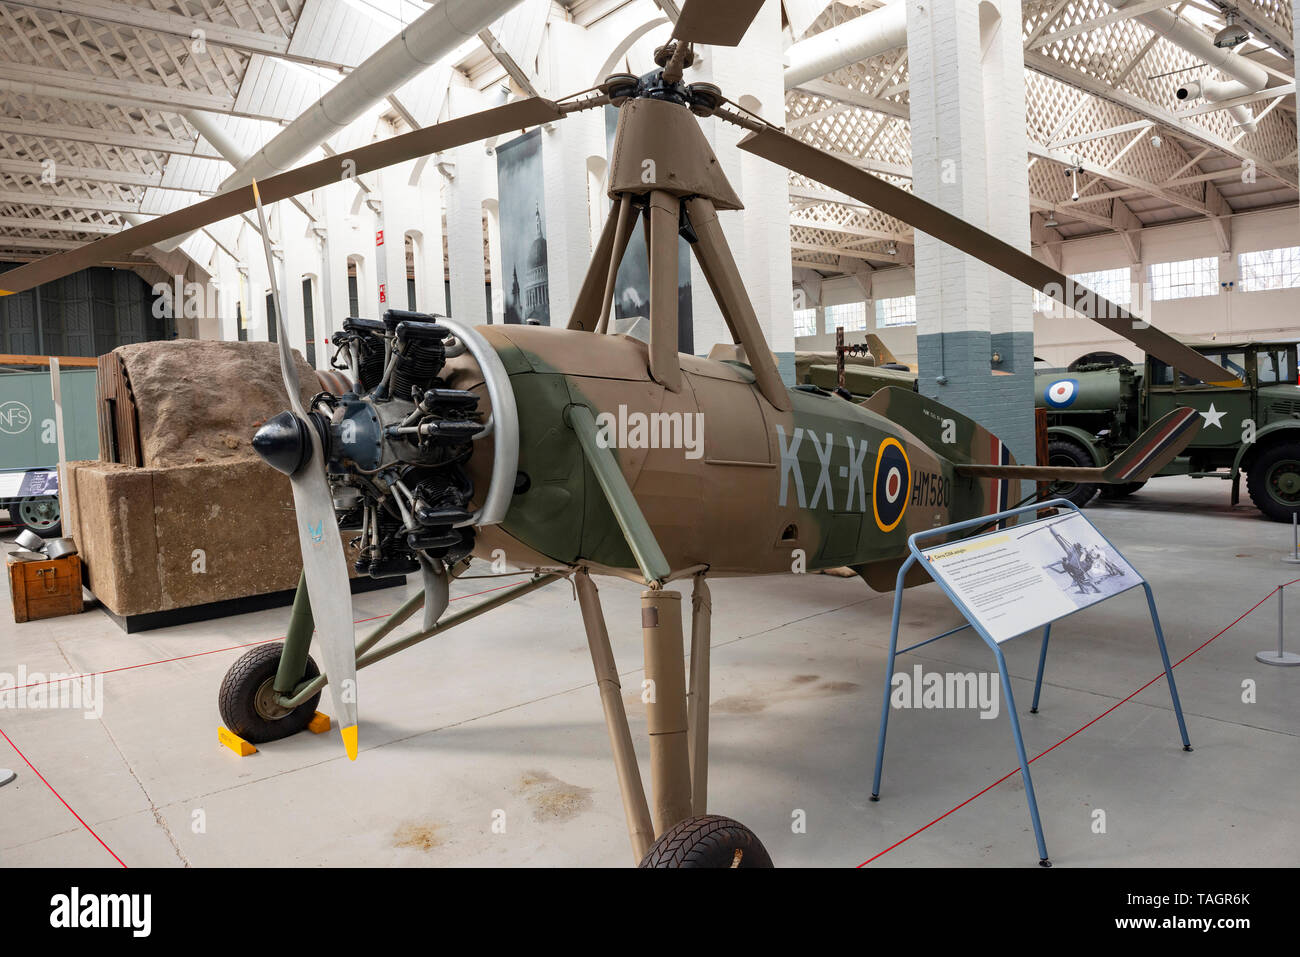 World War Two Cierva C.30A Rota I autogiro at the Imperial War Museum, Duxford, Cambridgeshire, UK - Stock Image